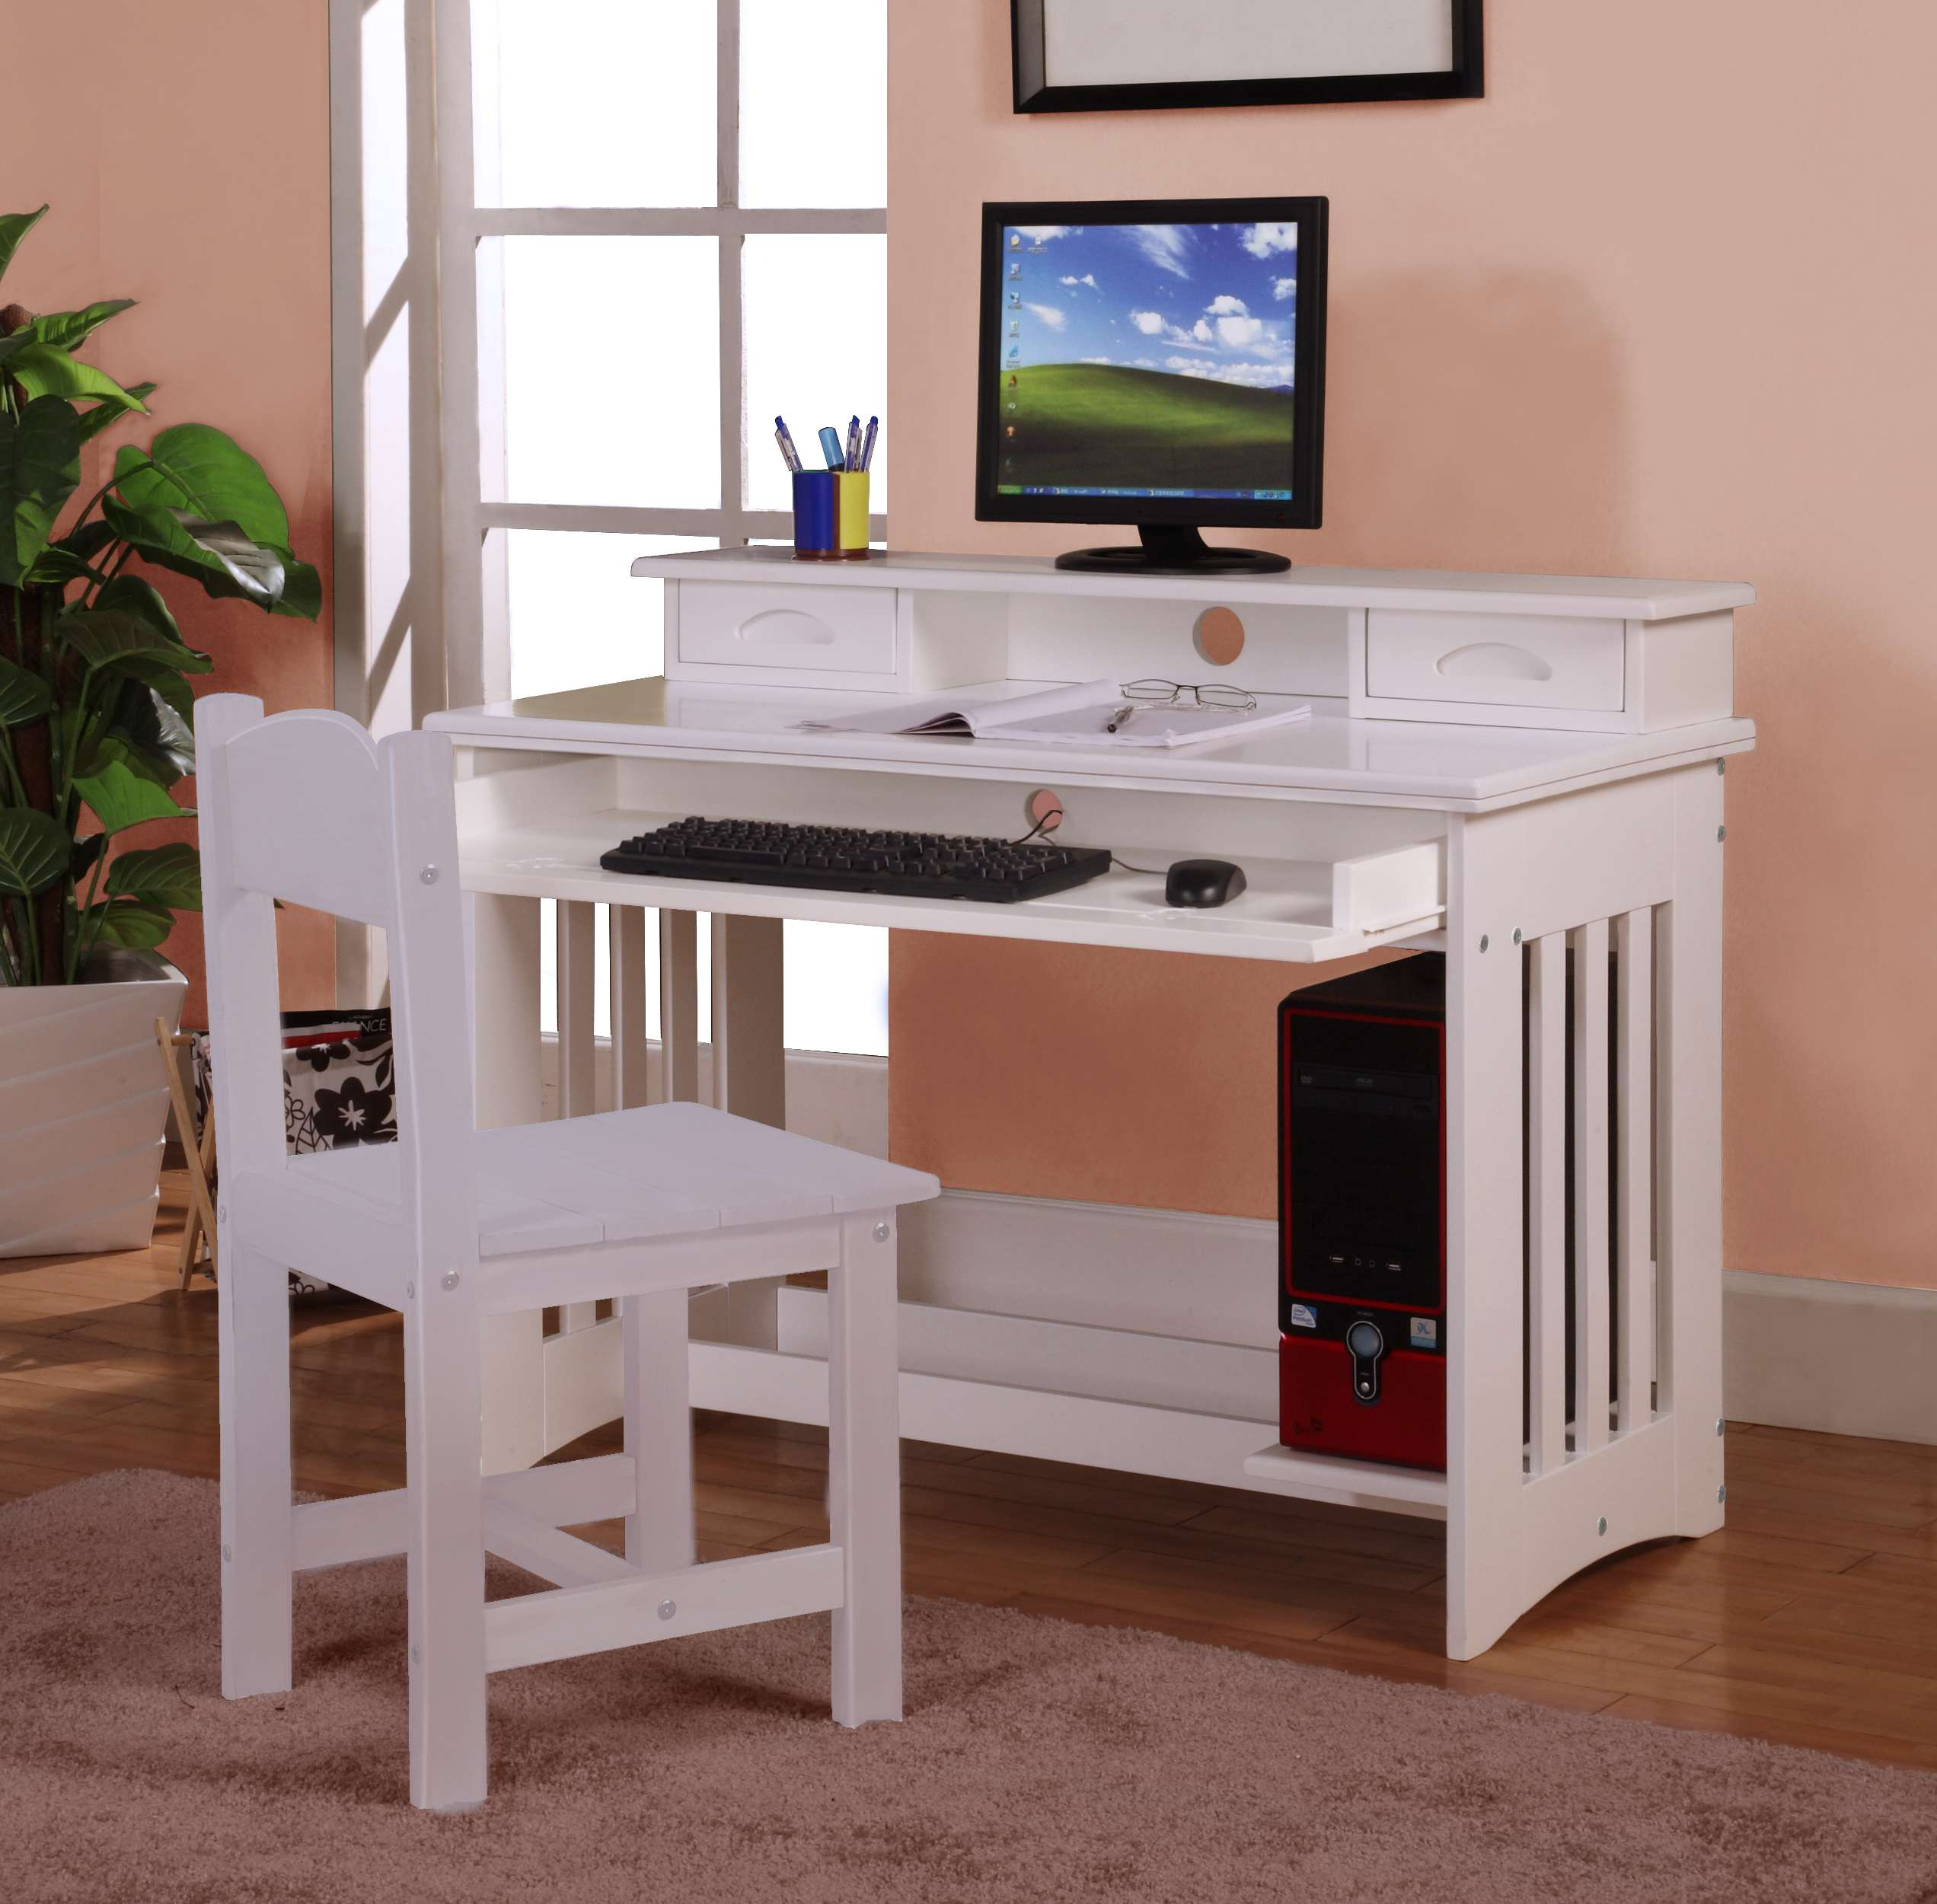 Discovery World Furniture White Desk with Hutch  KFS STORES